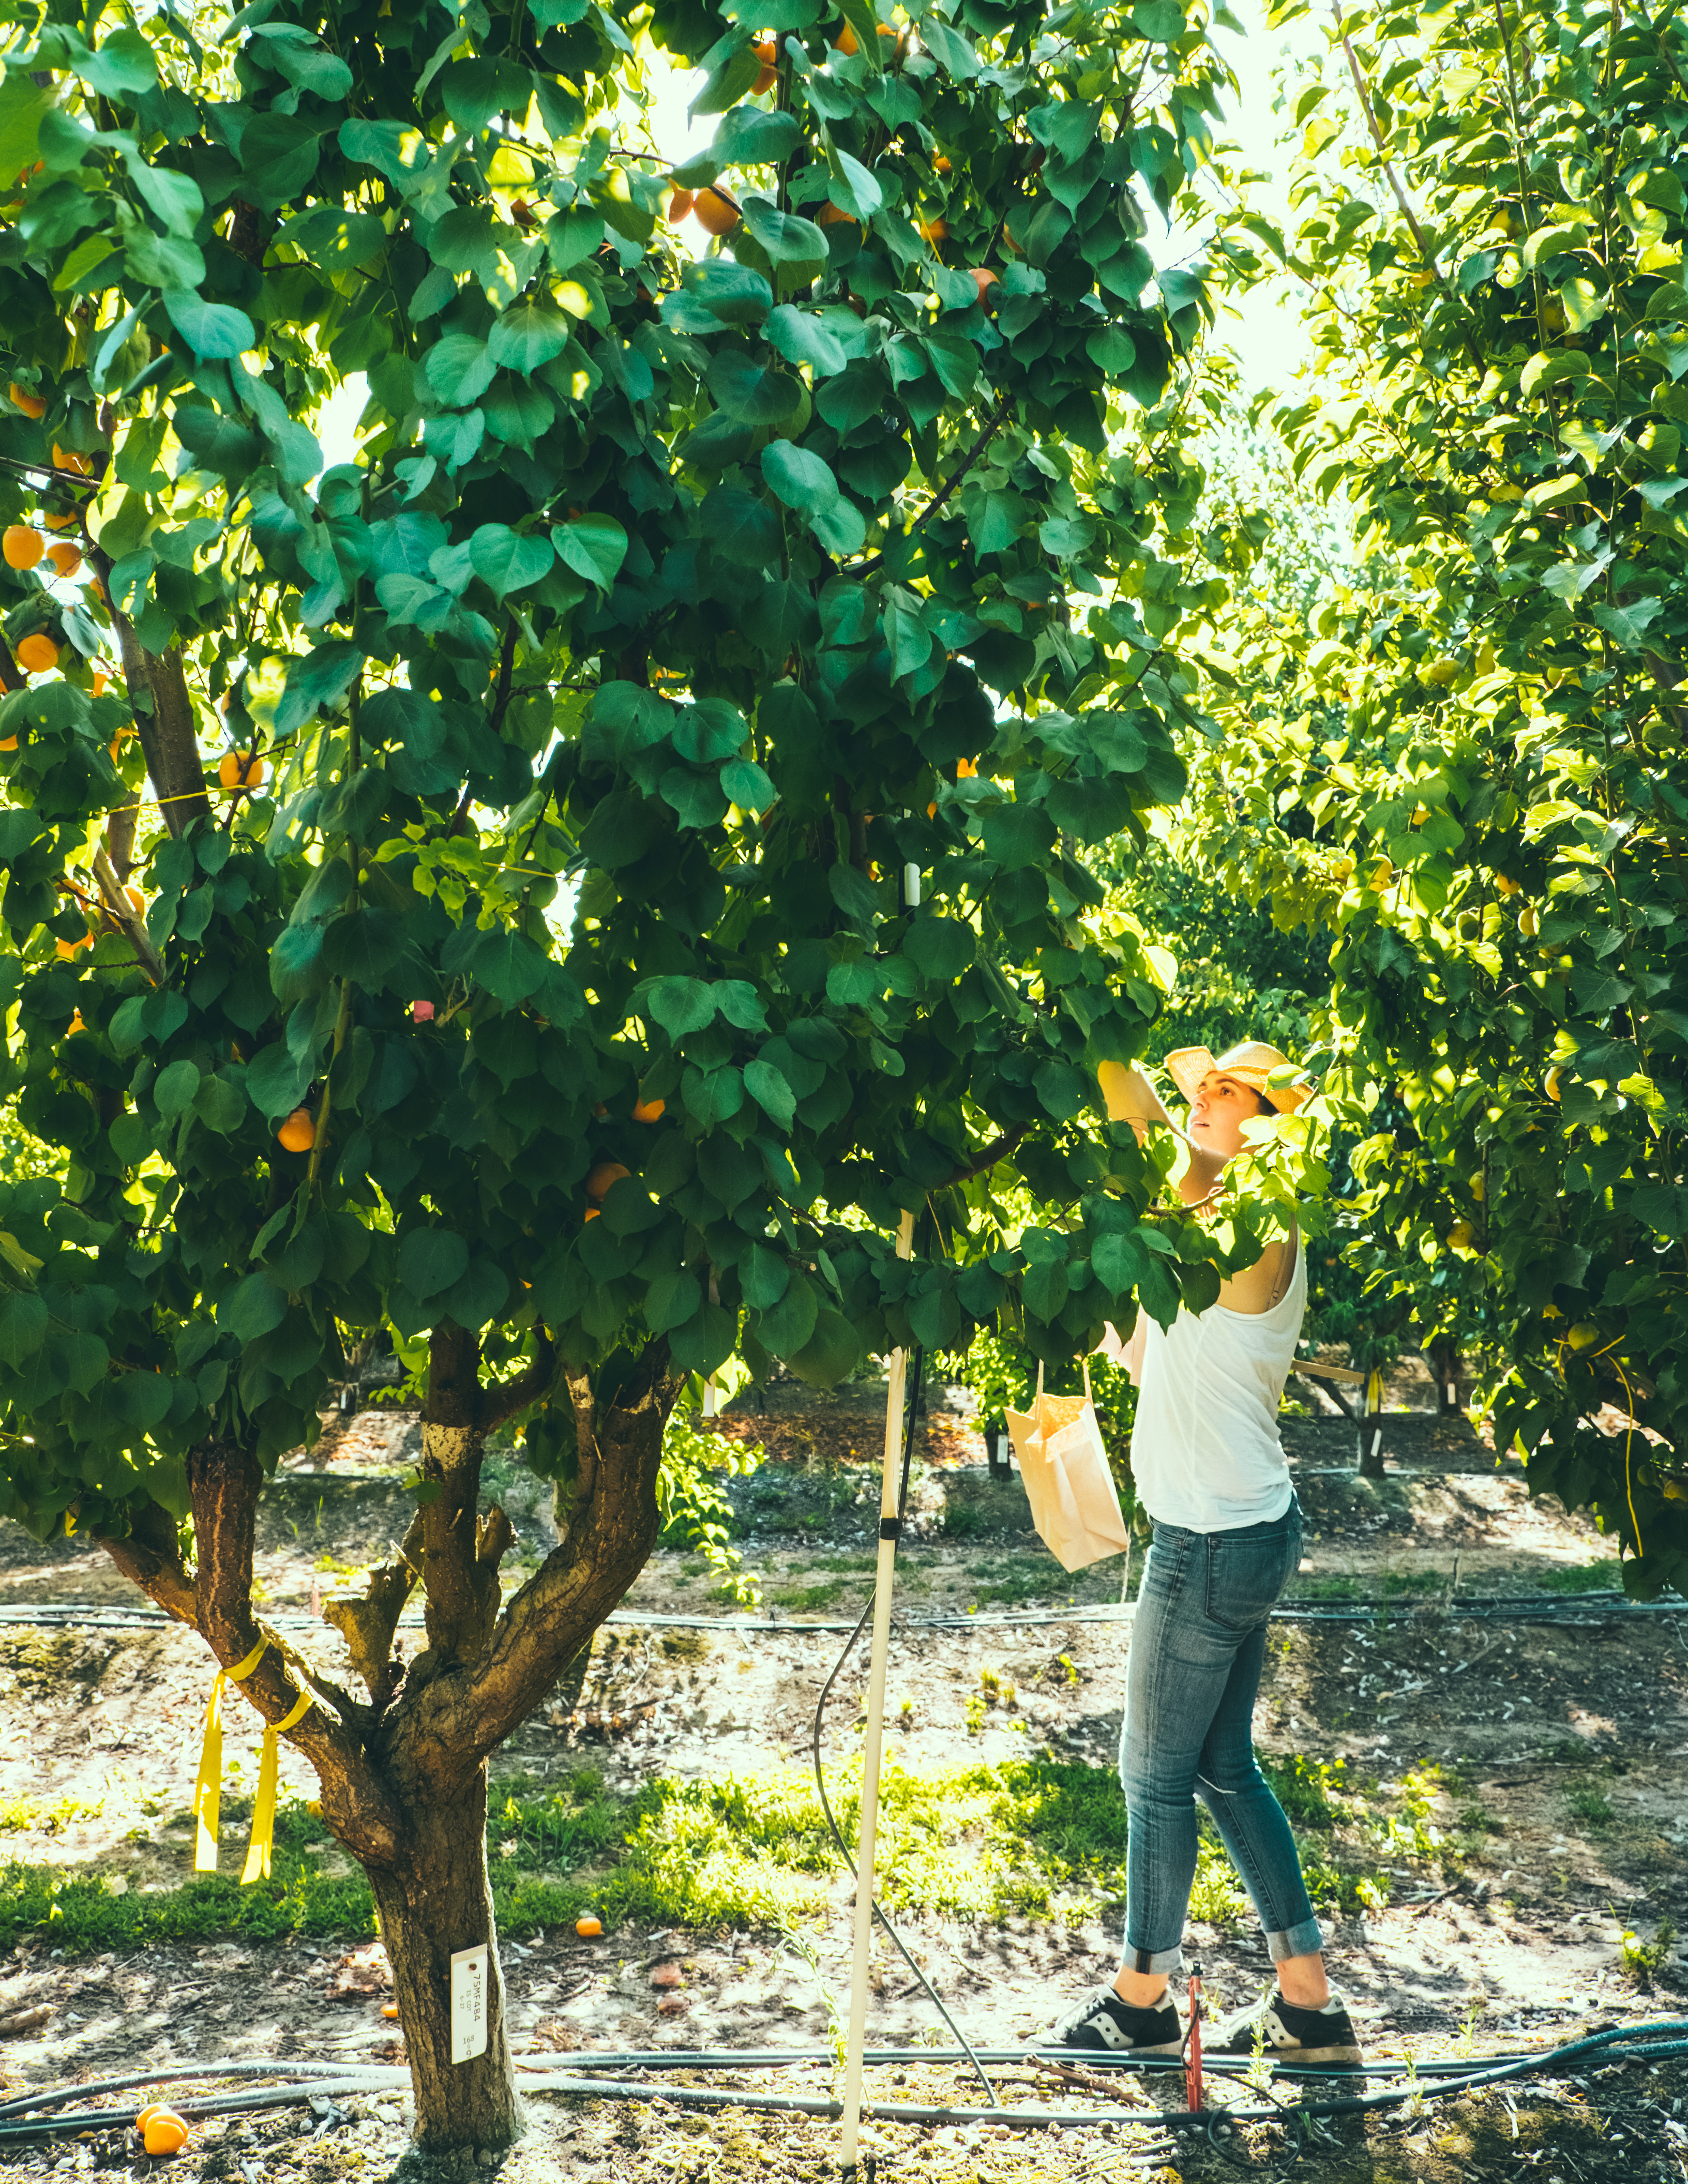 How to grow your own backyard orchard